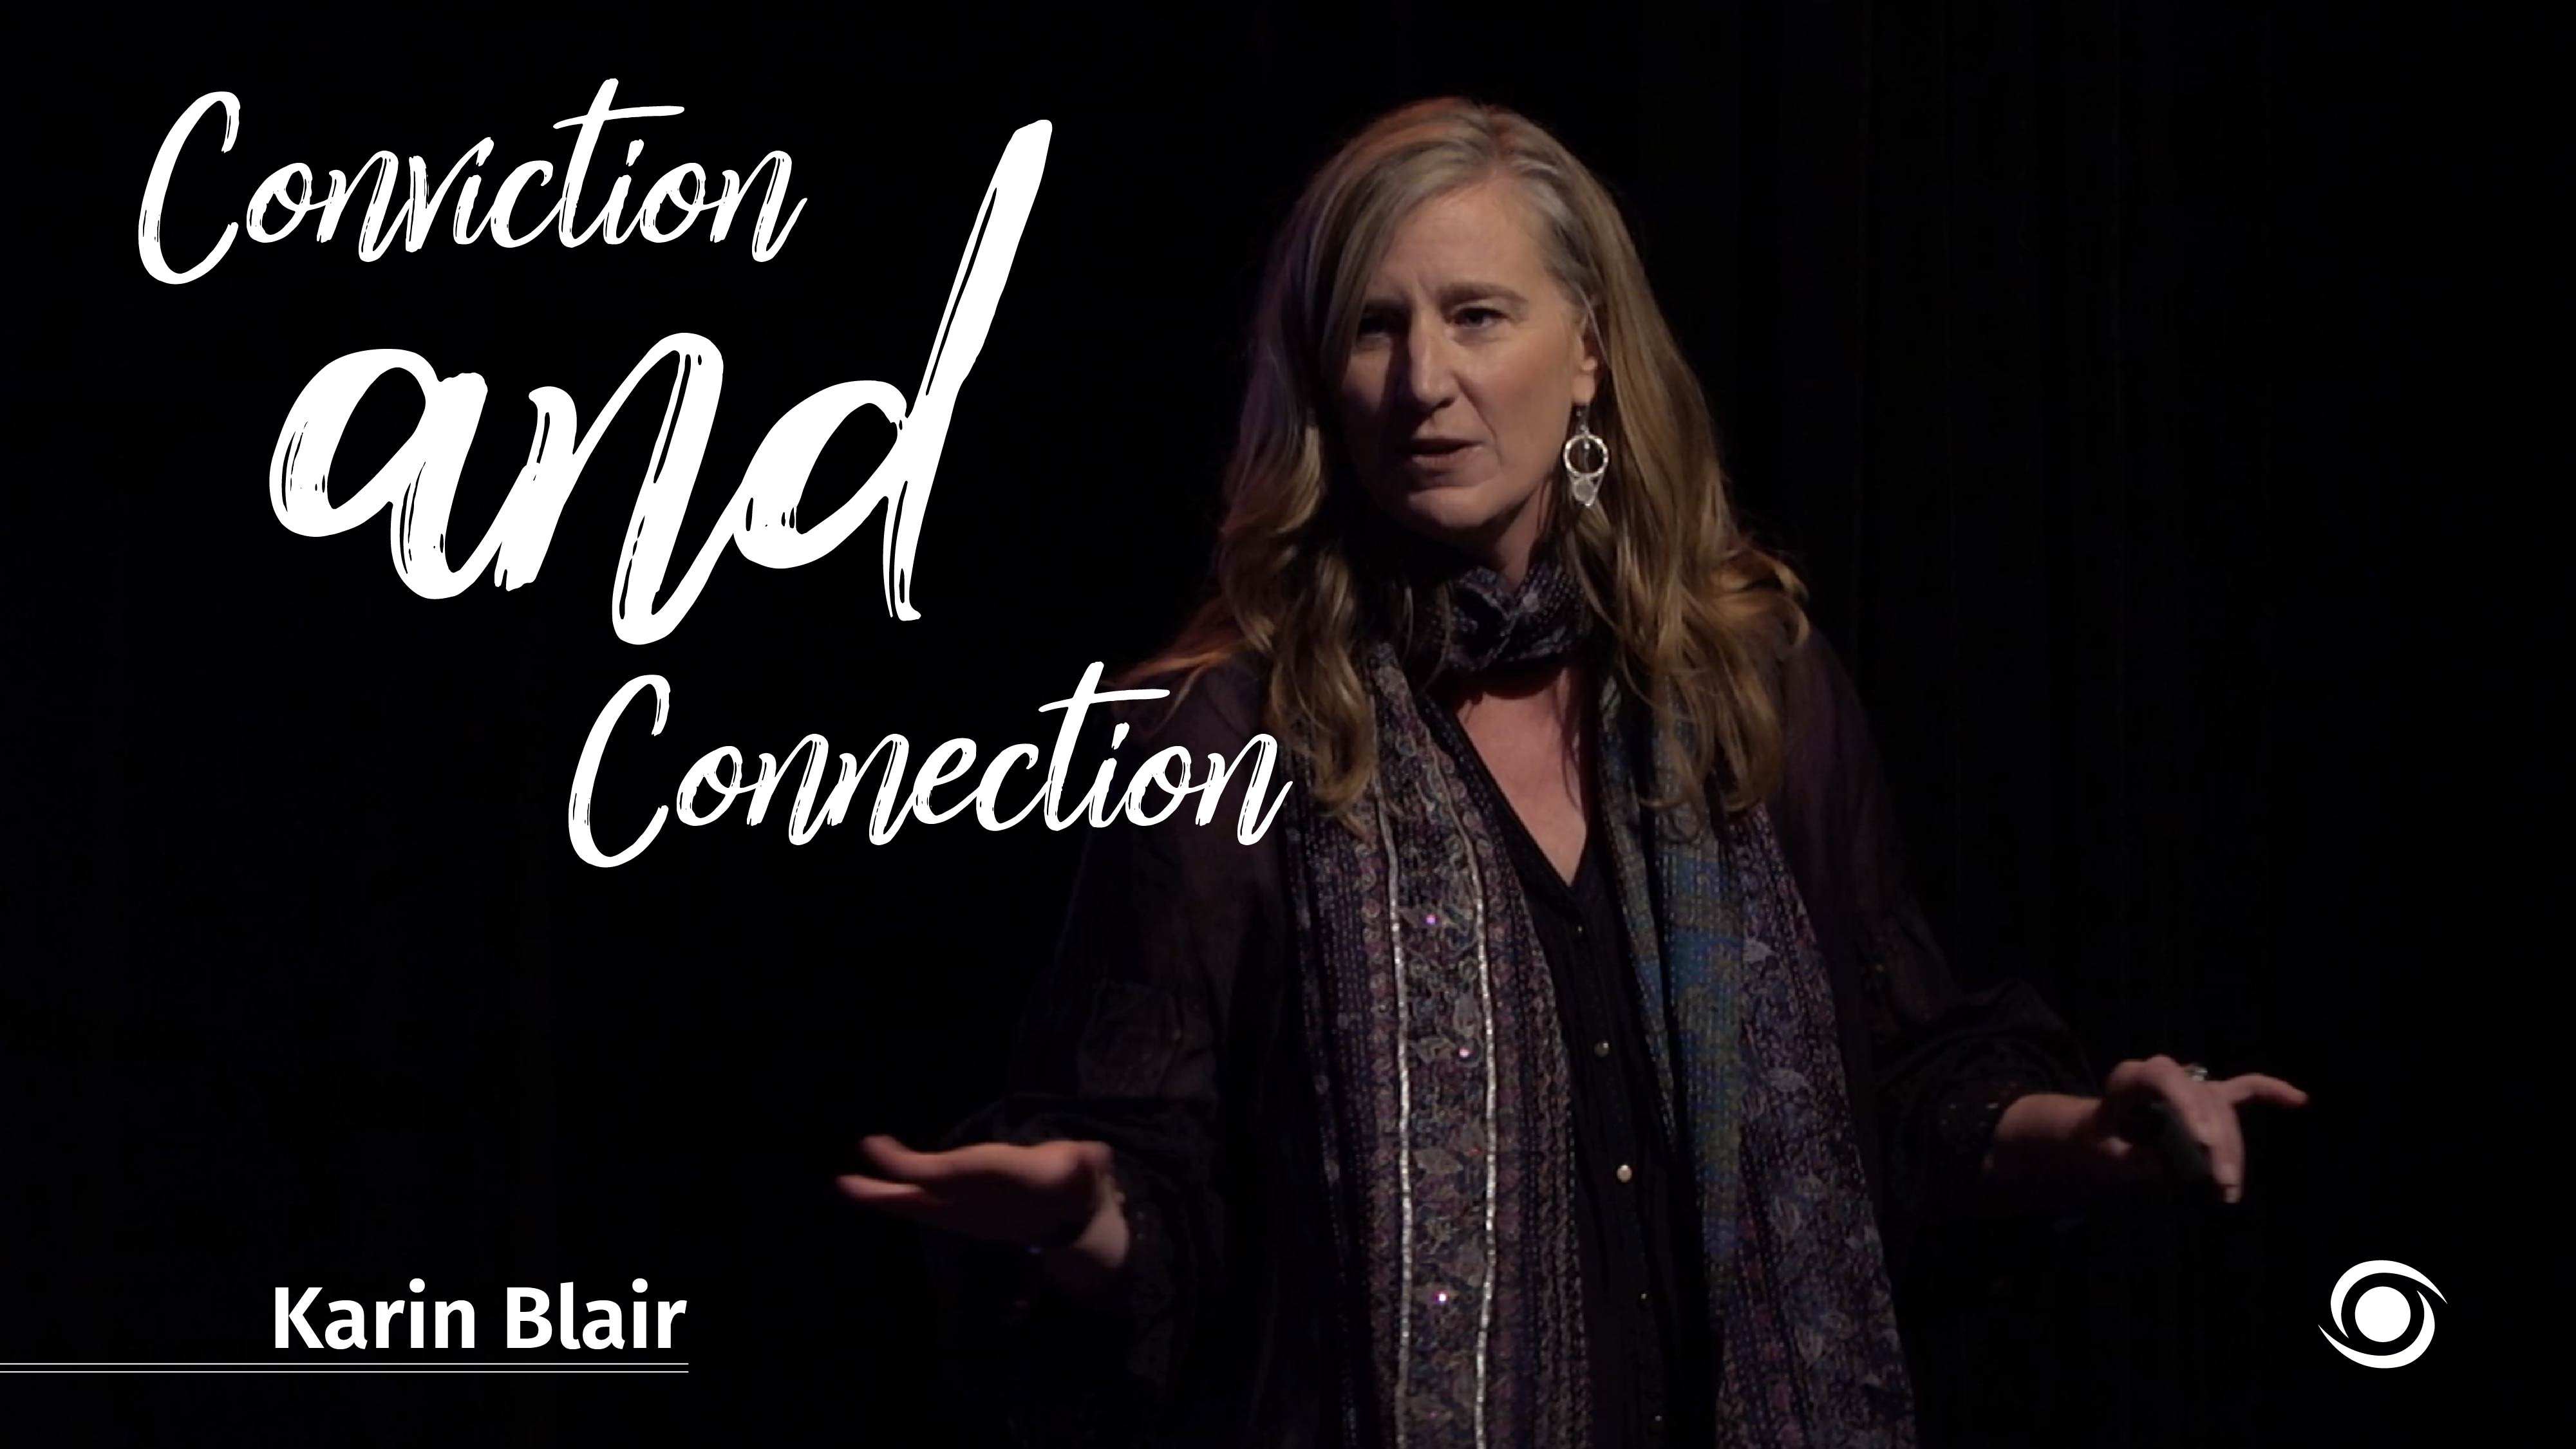 Karin-Blair-Conviction-And-Connection